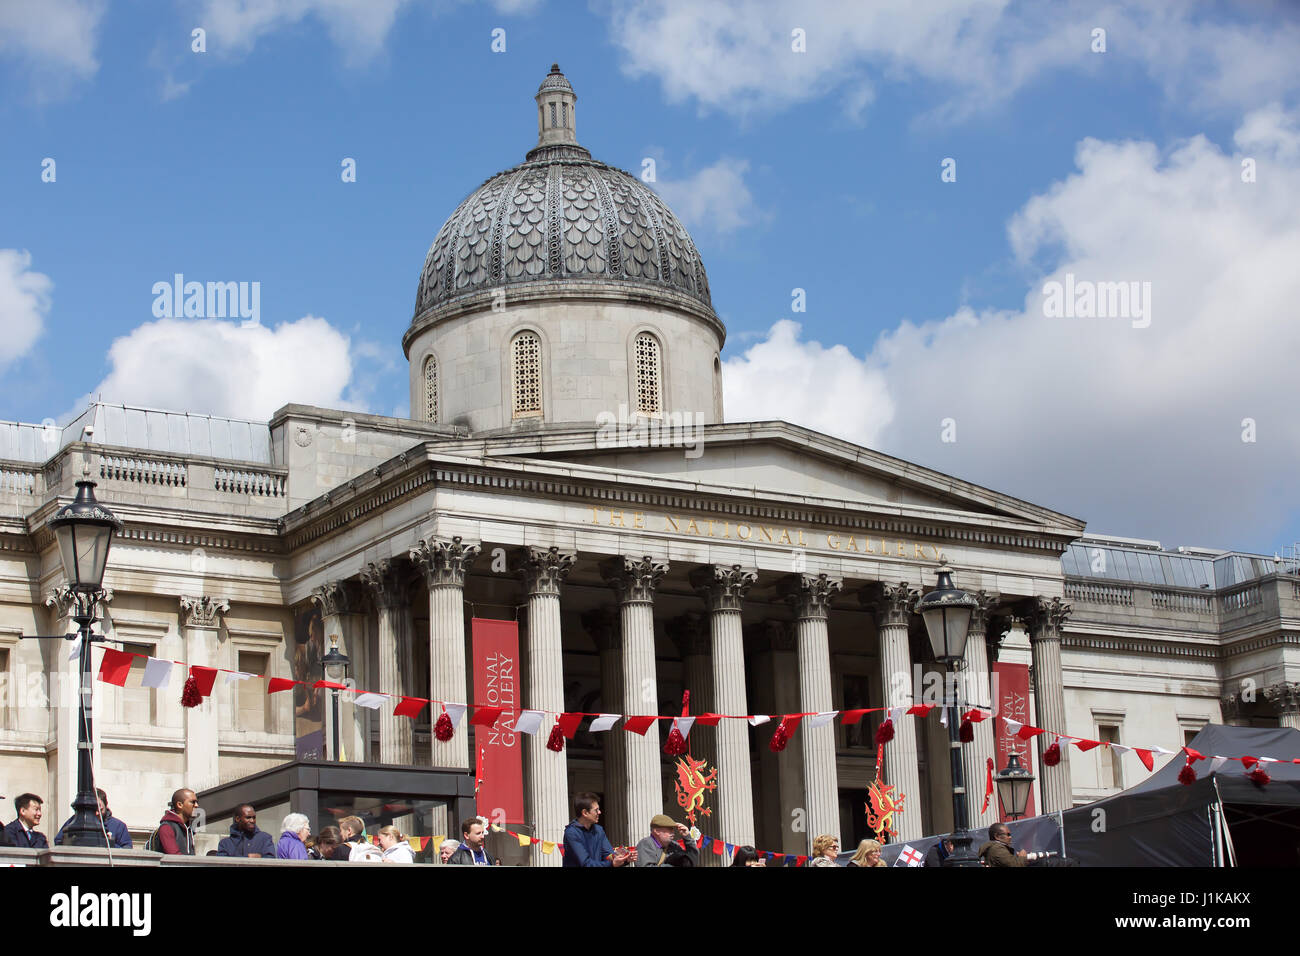 Trafalgar Square,UK,22nd April 2017,Flags hang in front of the National Gallery at The Annual Feast of St George - Stock Image